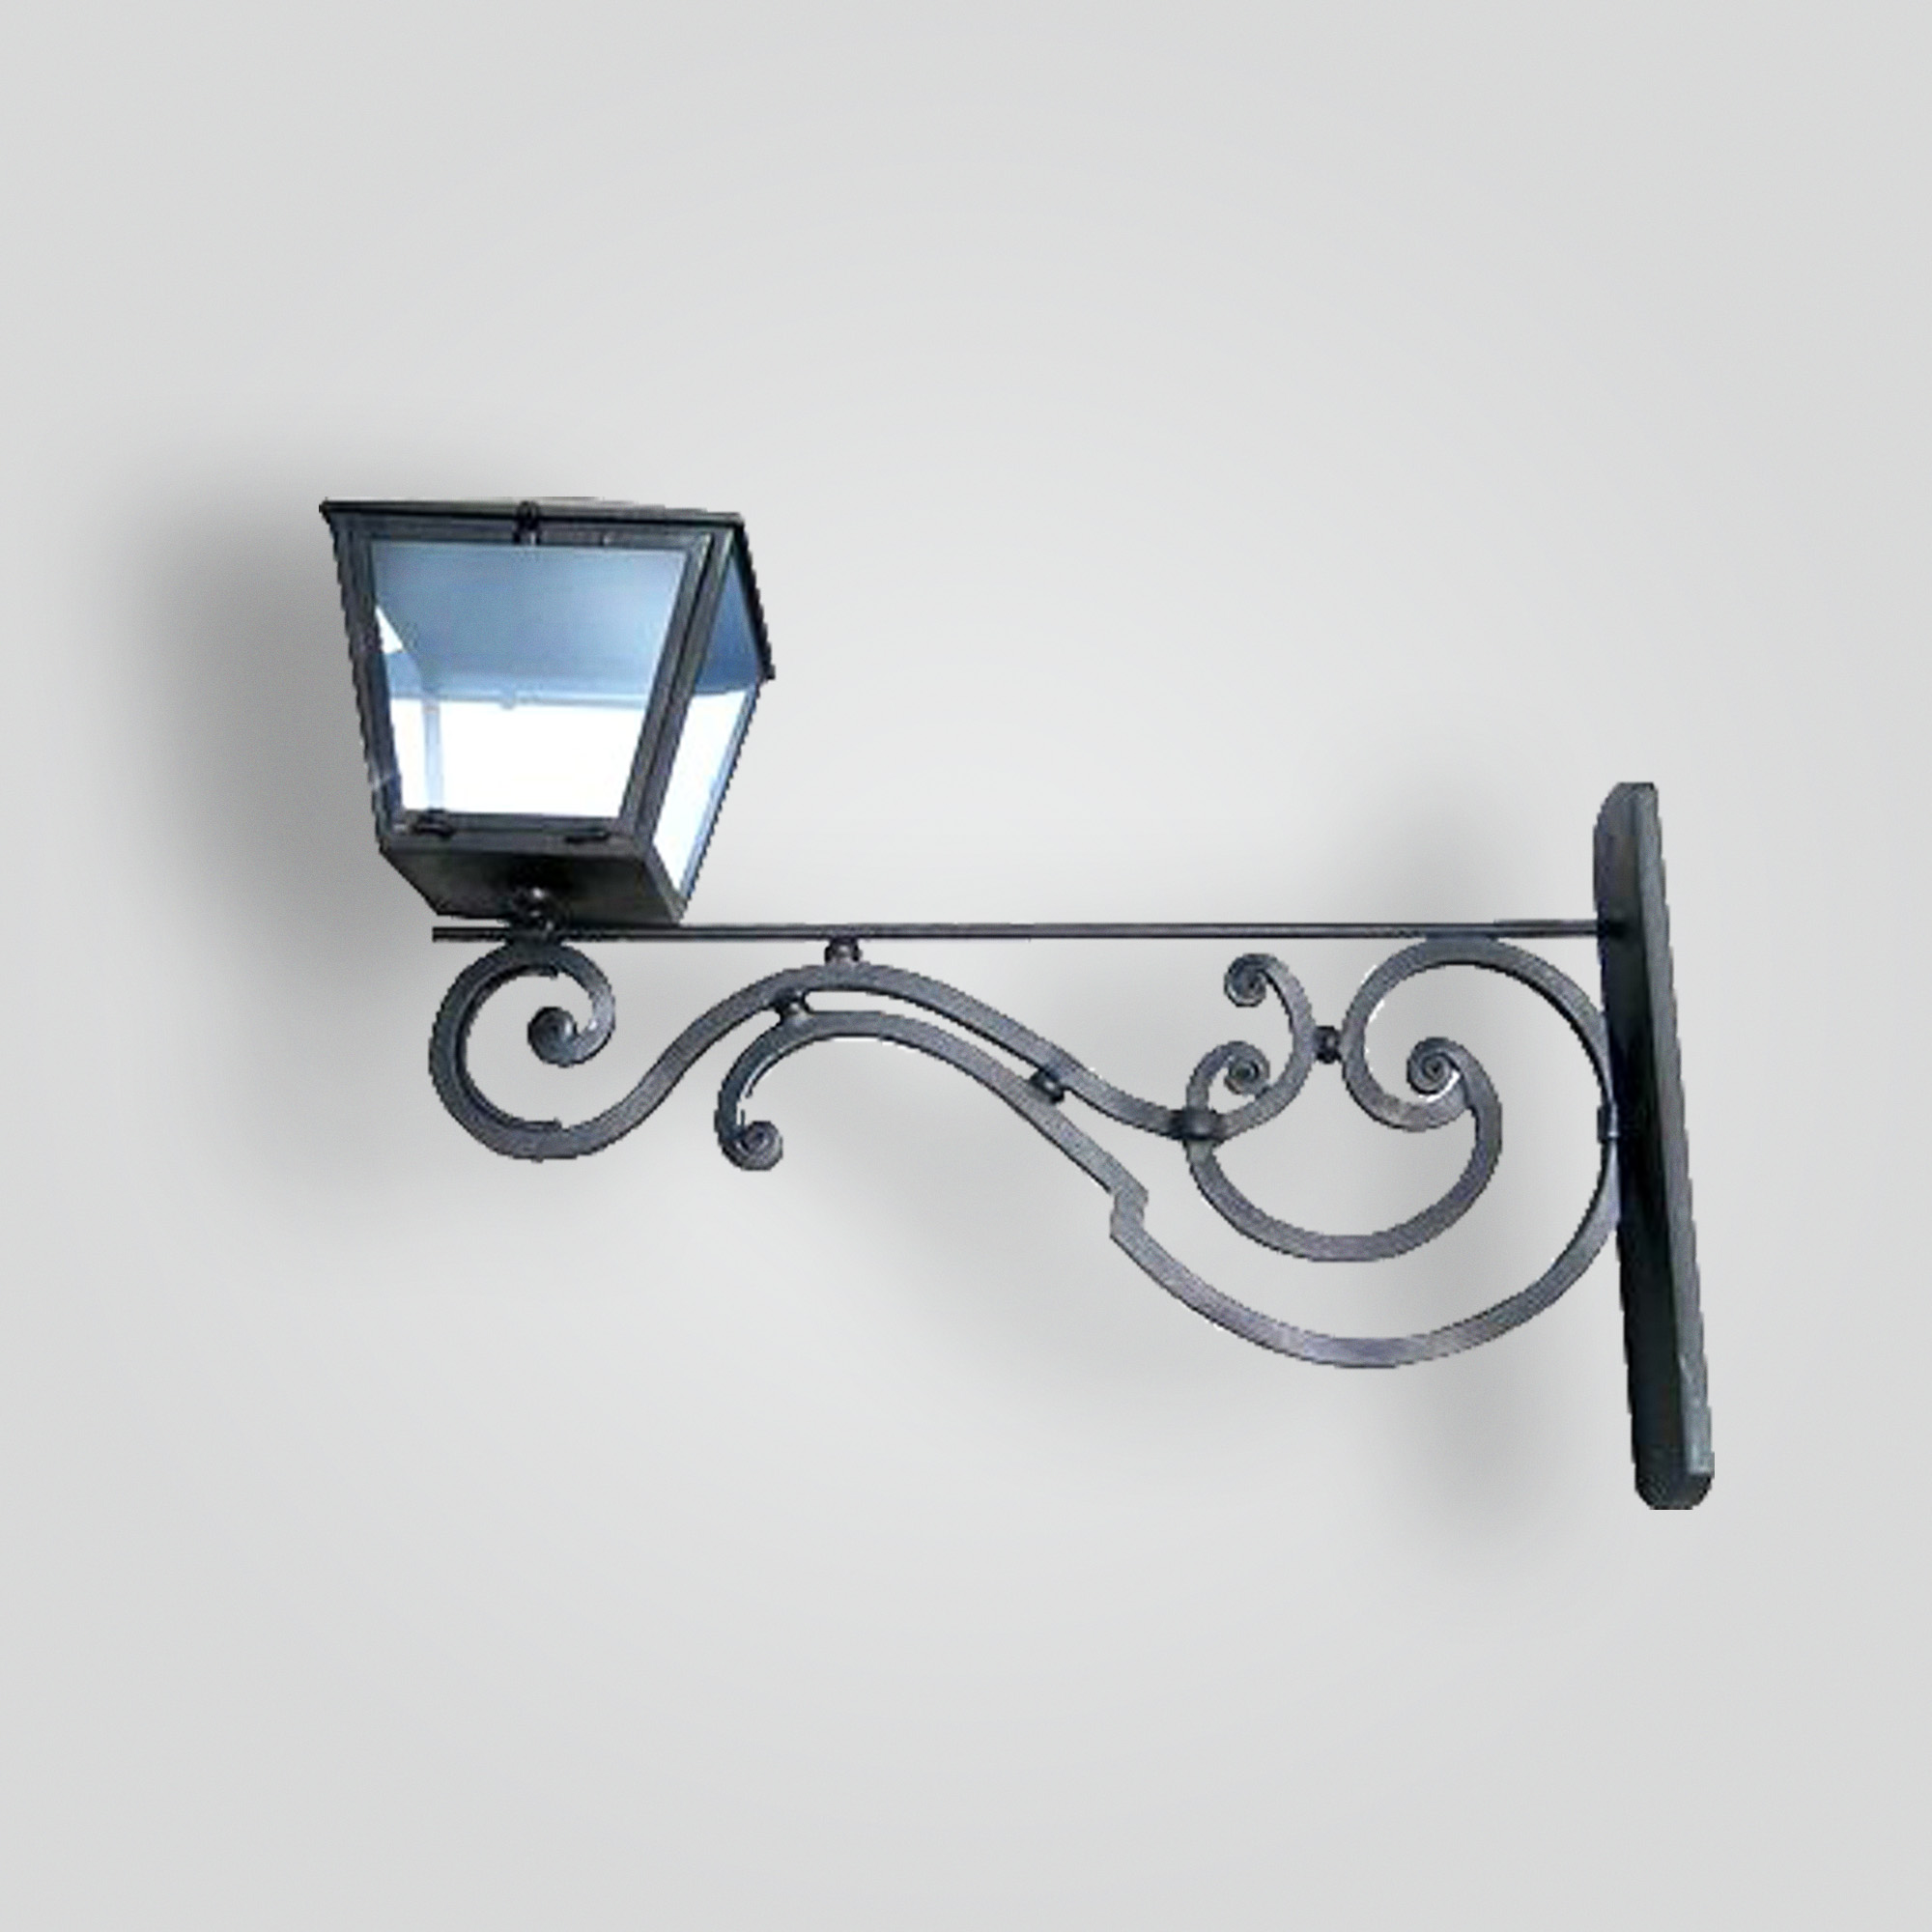 170-mb1-ir-w-ba Kirkaby Lantern – ADG Lighting Collection